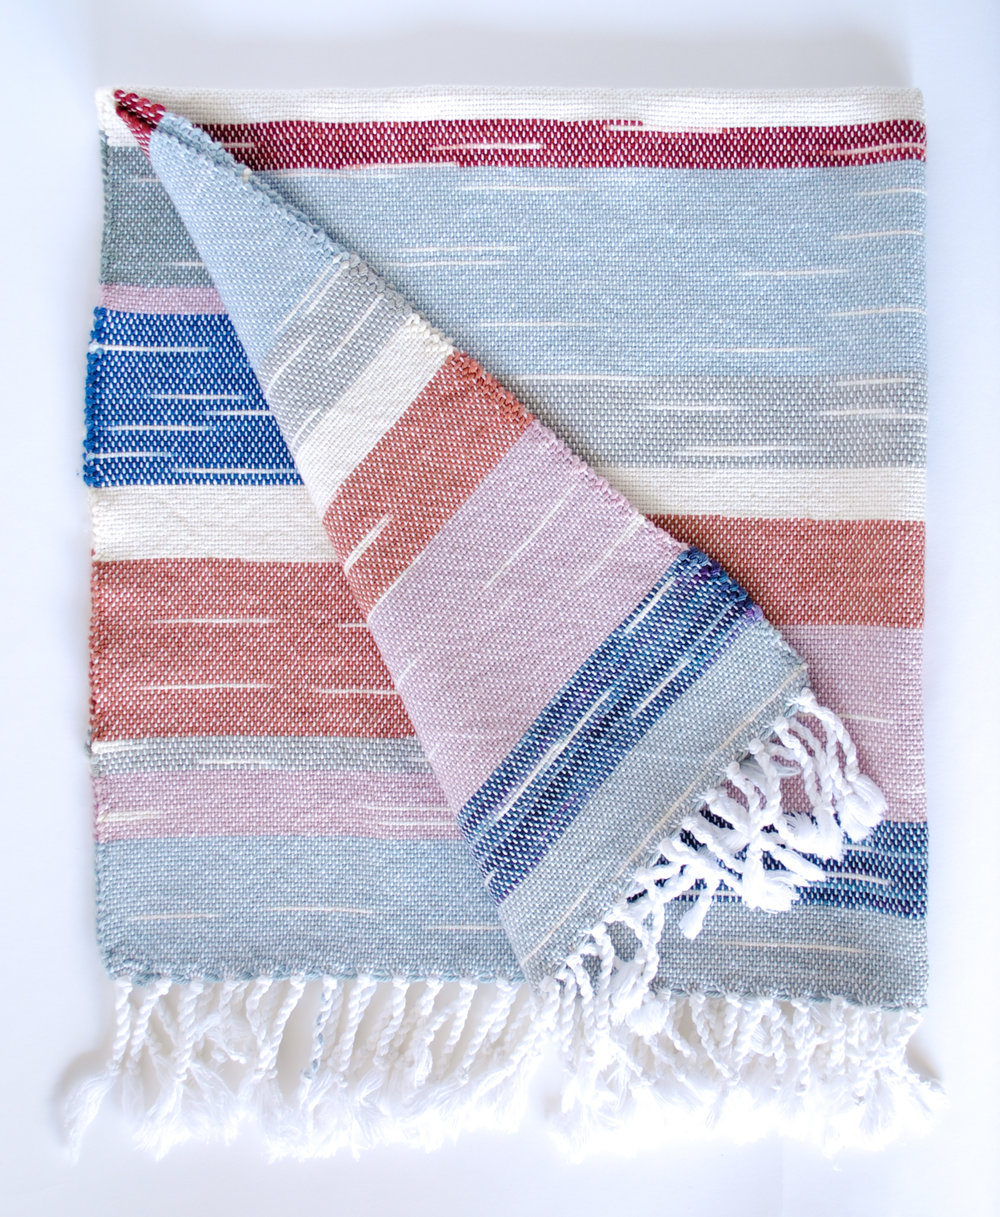 WEGATHER_Handwoven_BundleBlanket_Stripes_Folded.JPG